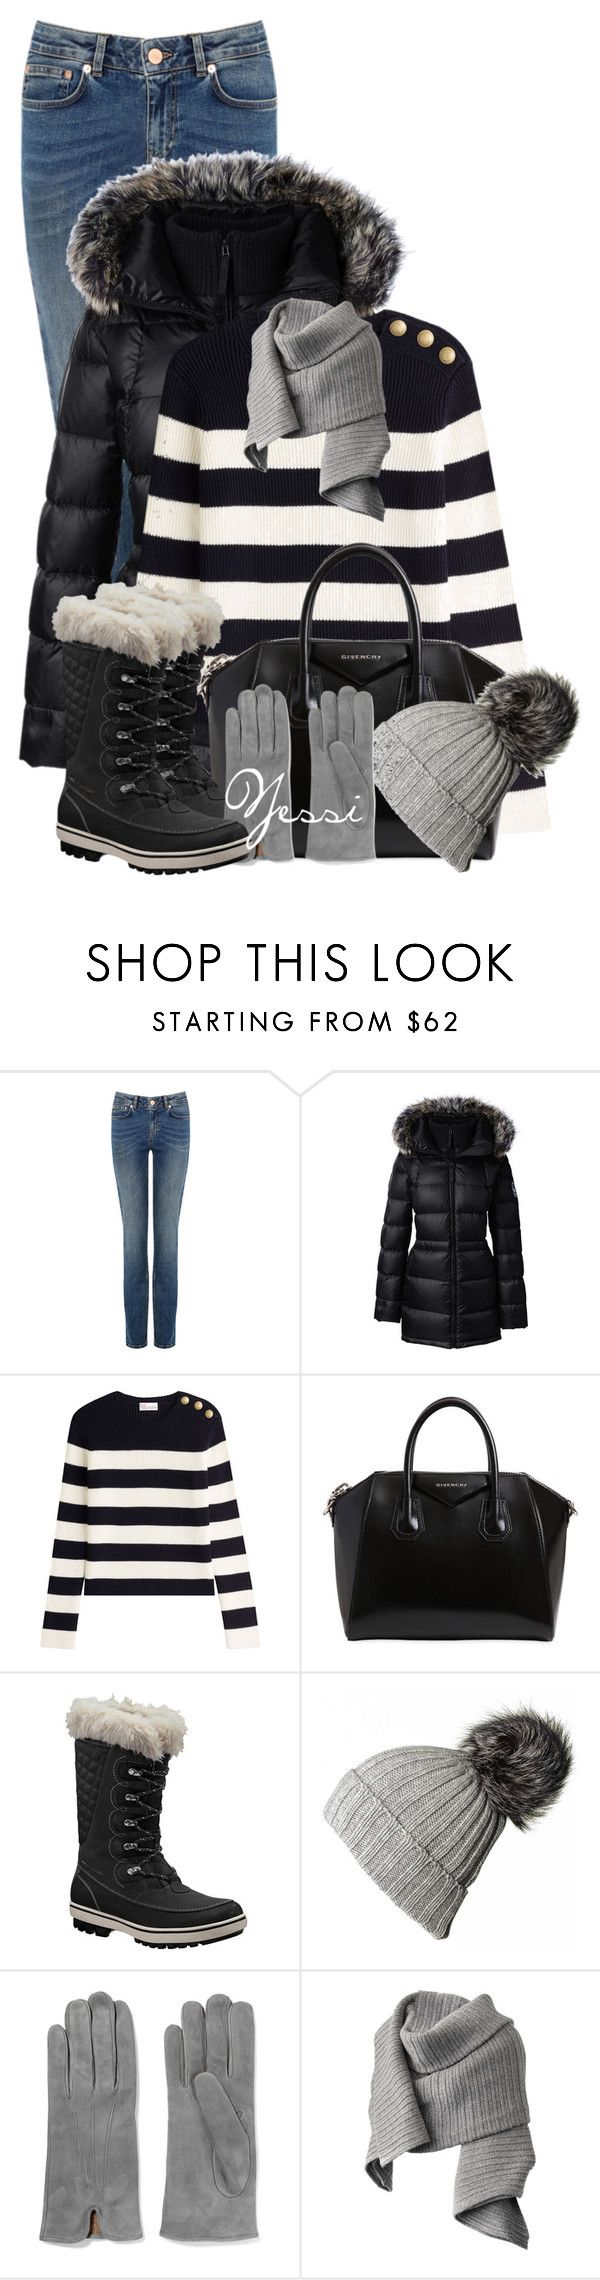 """""""~ 💕 Cold Weather Fashion 💕 ~"""" by pretty-fashion-designs ❤ liked on Polyvore featuring Lands' End, RED Valentino, Givenchy, Helly Hansen, Black, 8 and Acne Studios"""